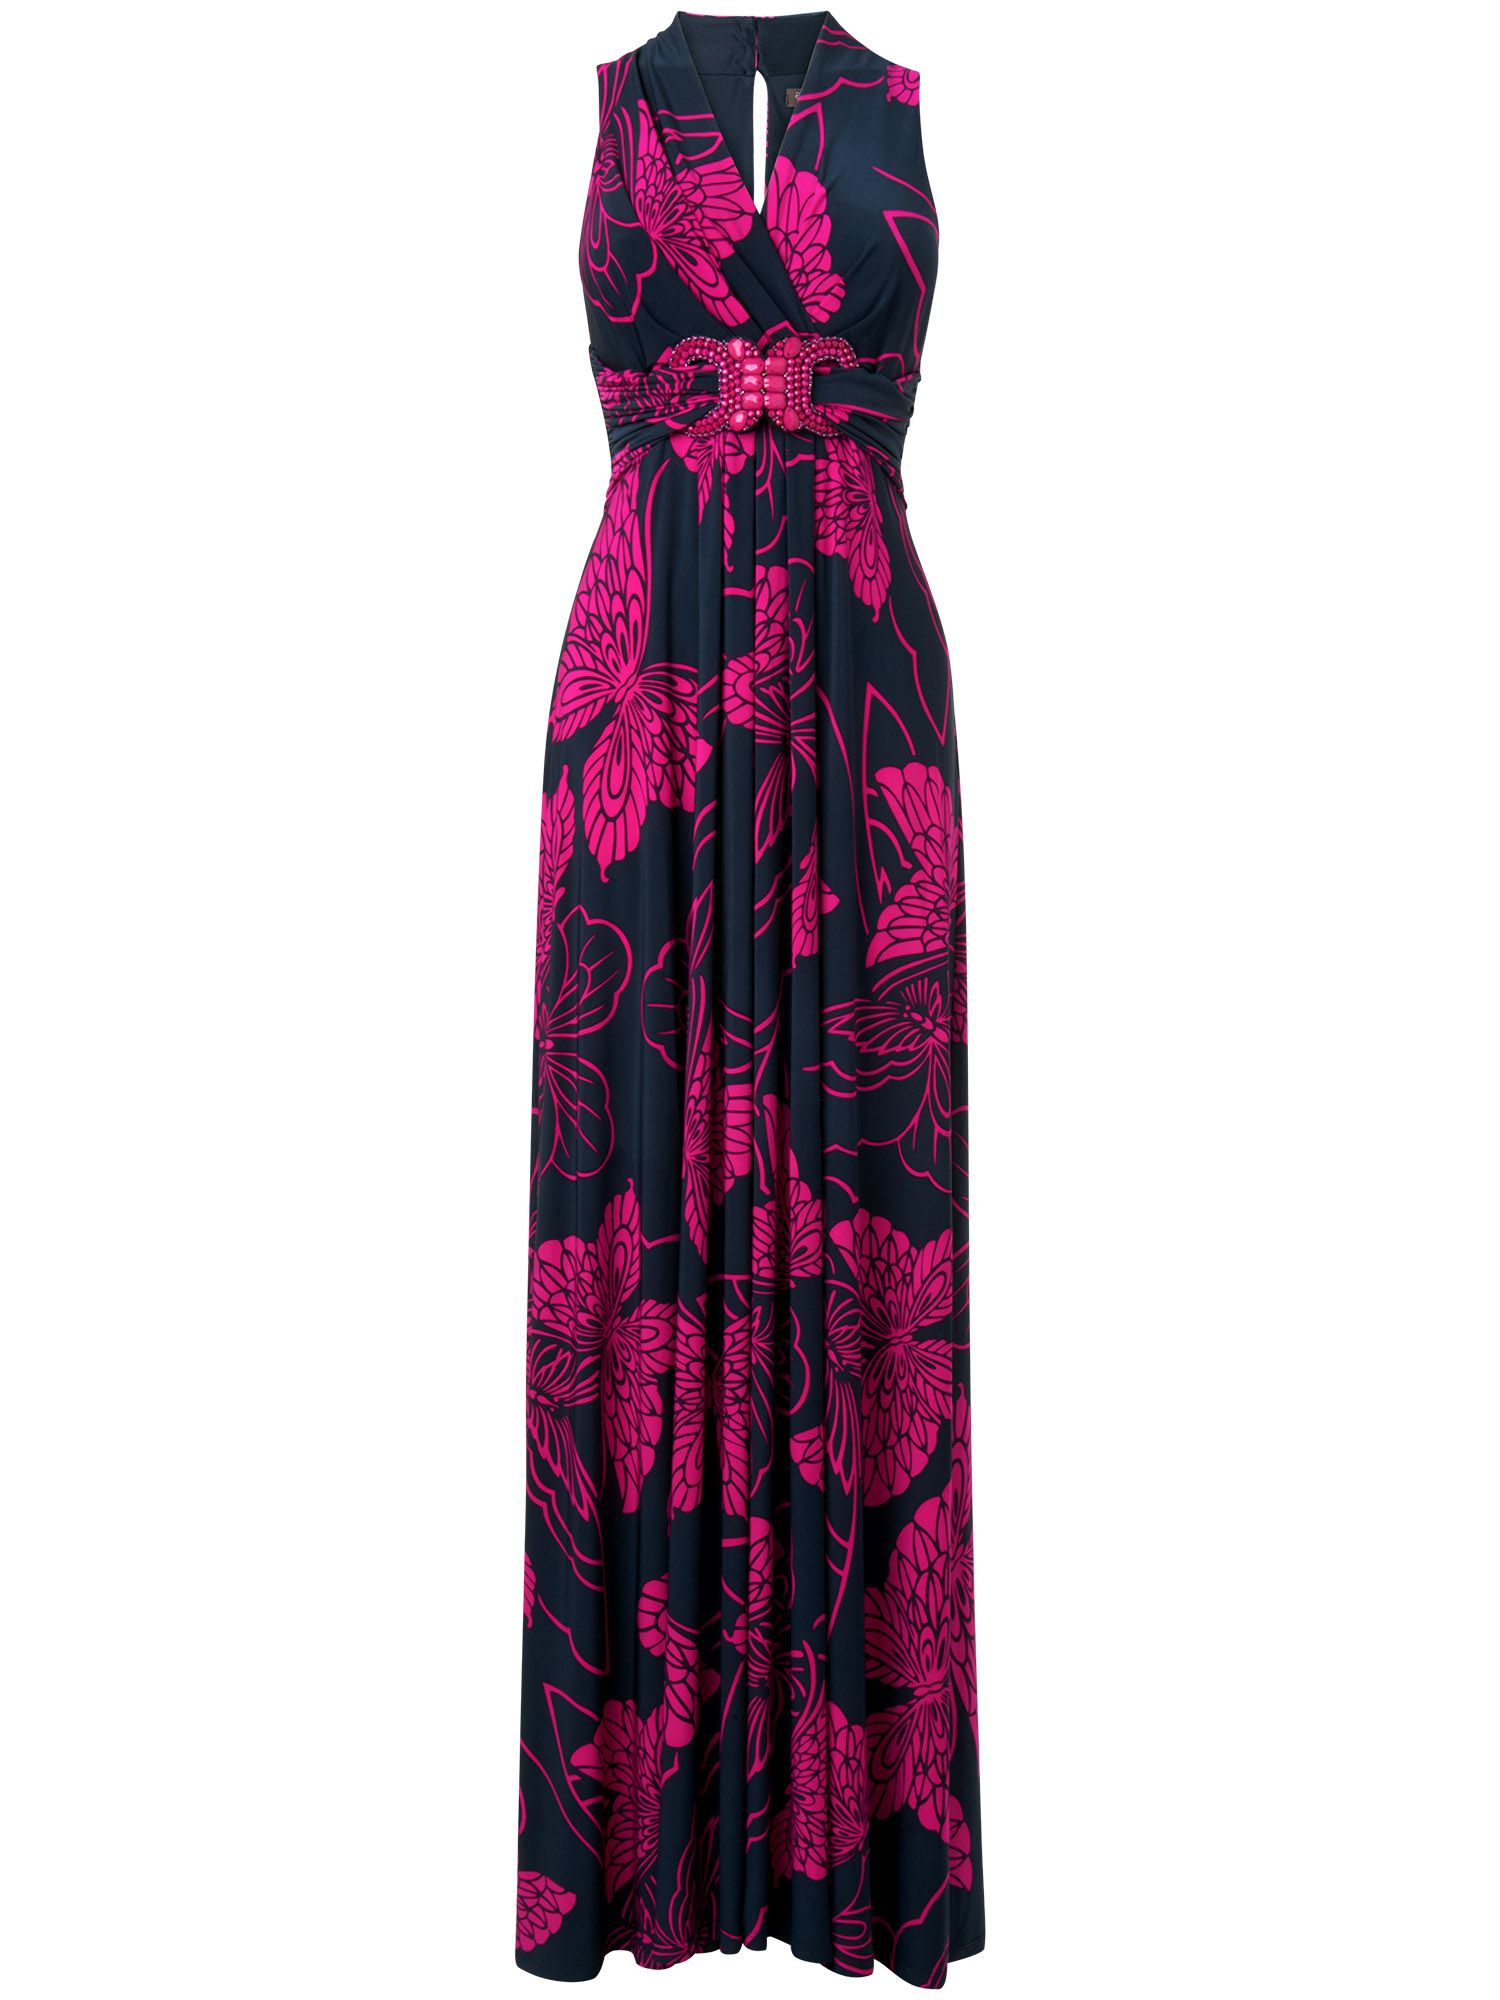 Mariposa butterfly maxi dress